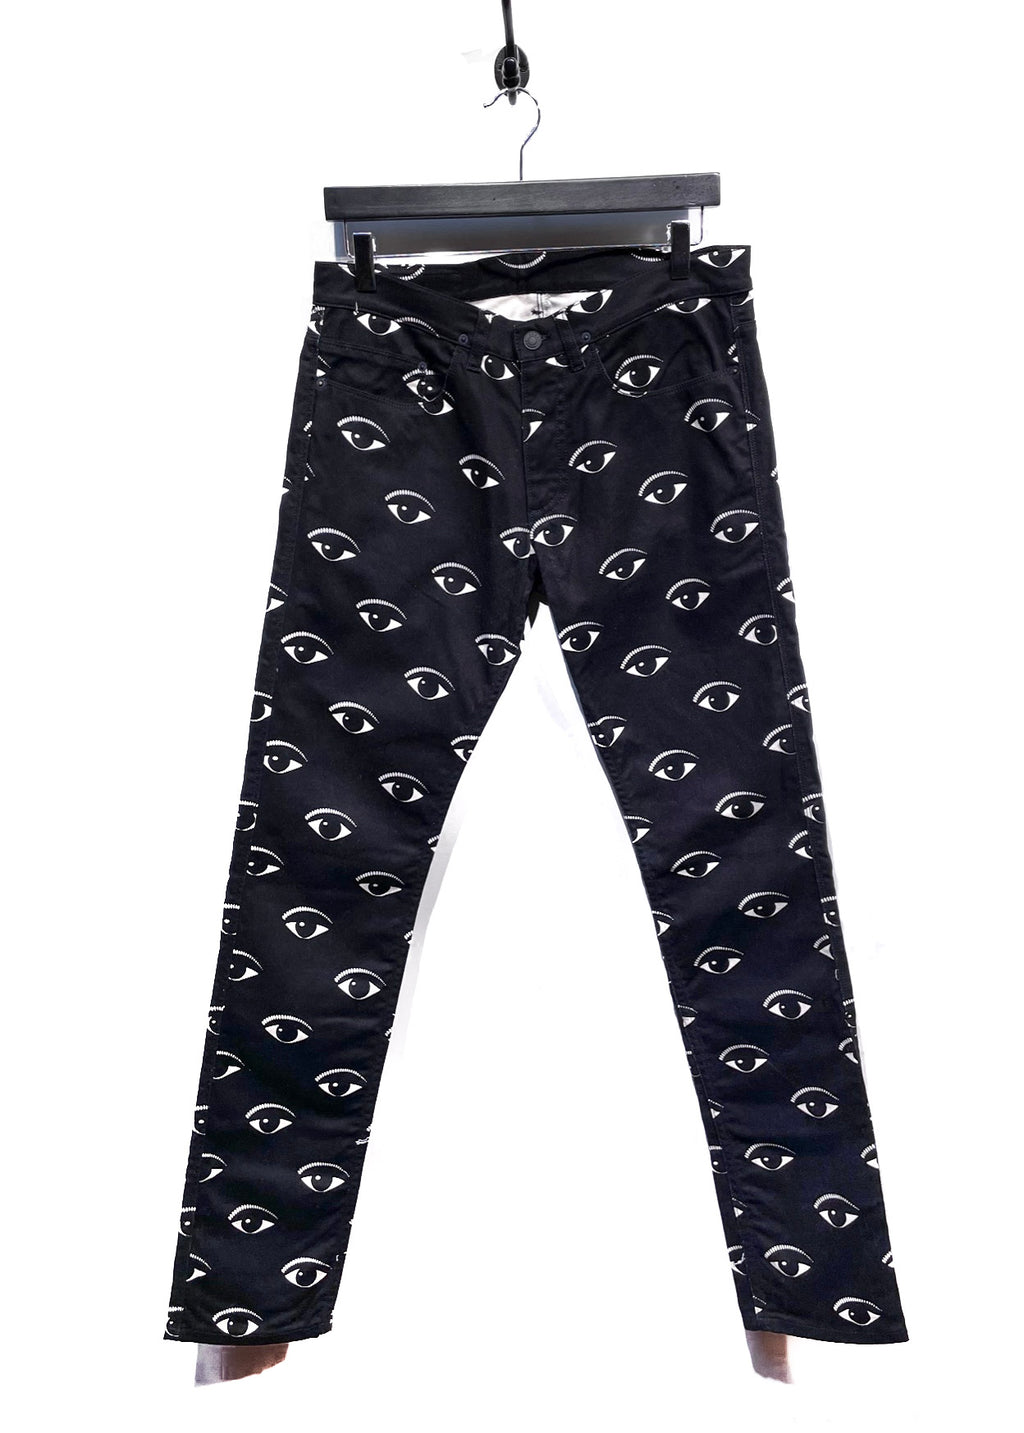 Kenzo Eye Print Black Denim Jeans